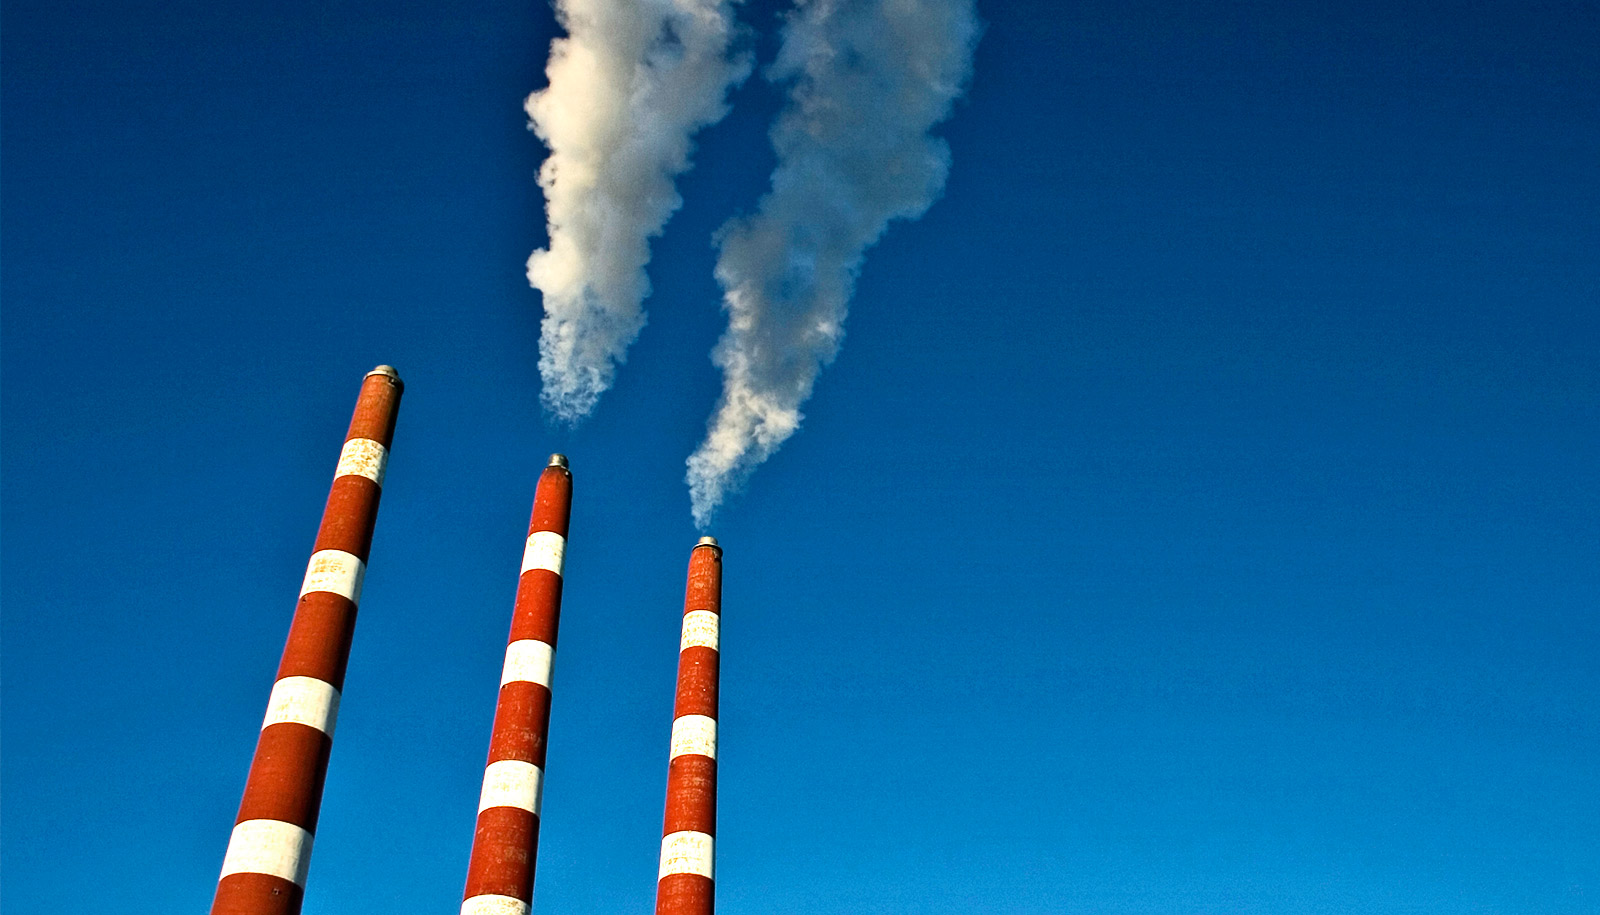 Air pollution from power plants is killing people